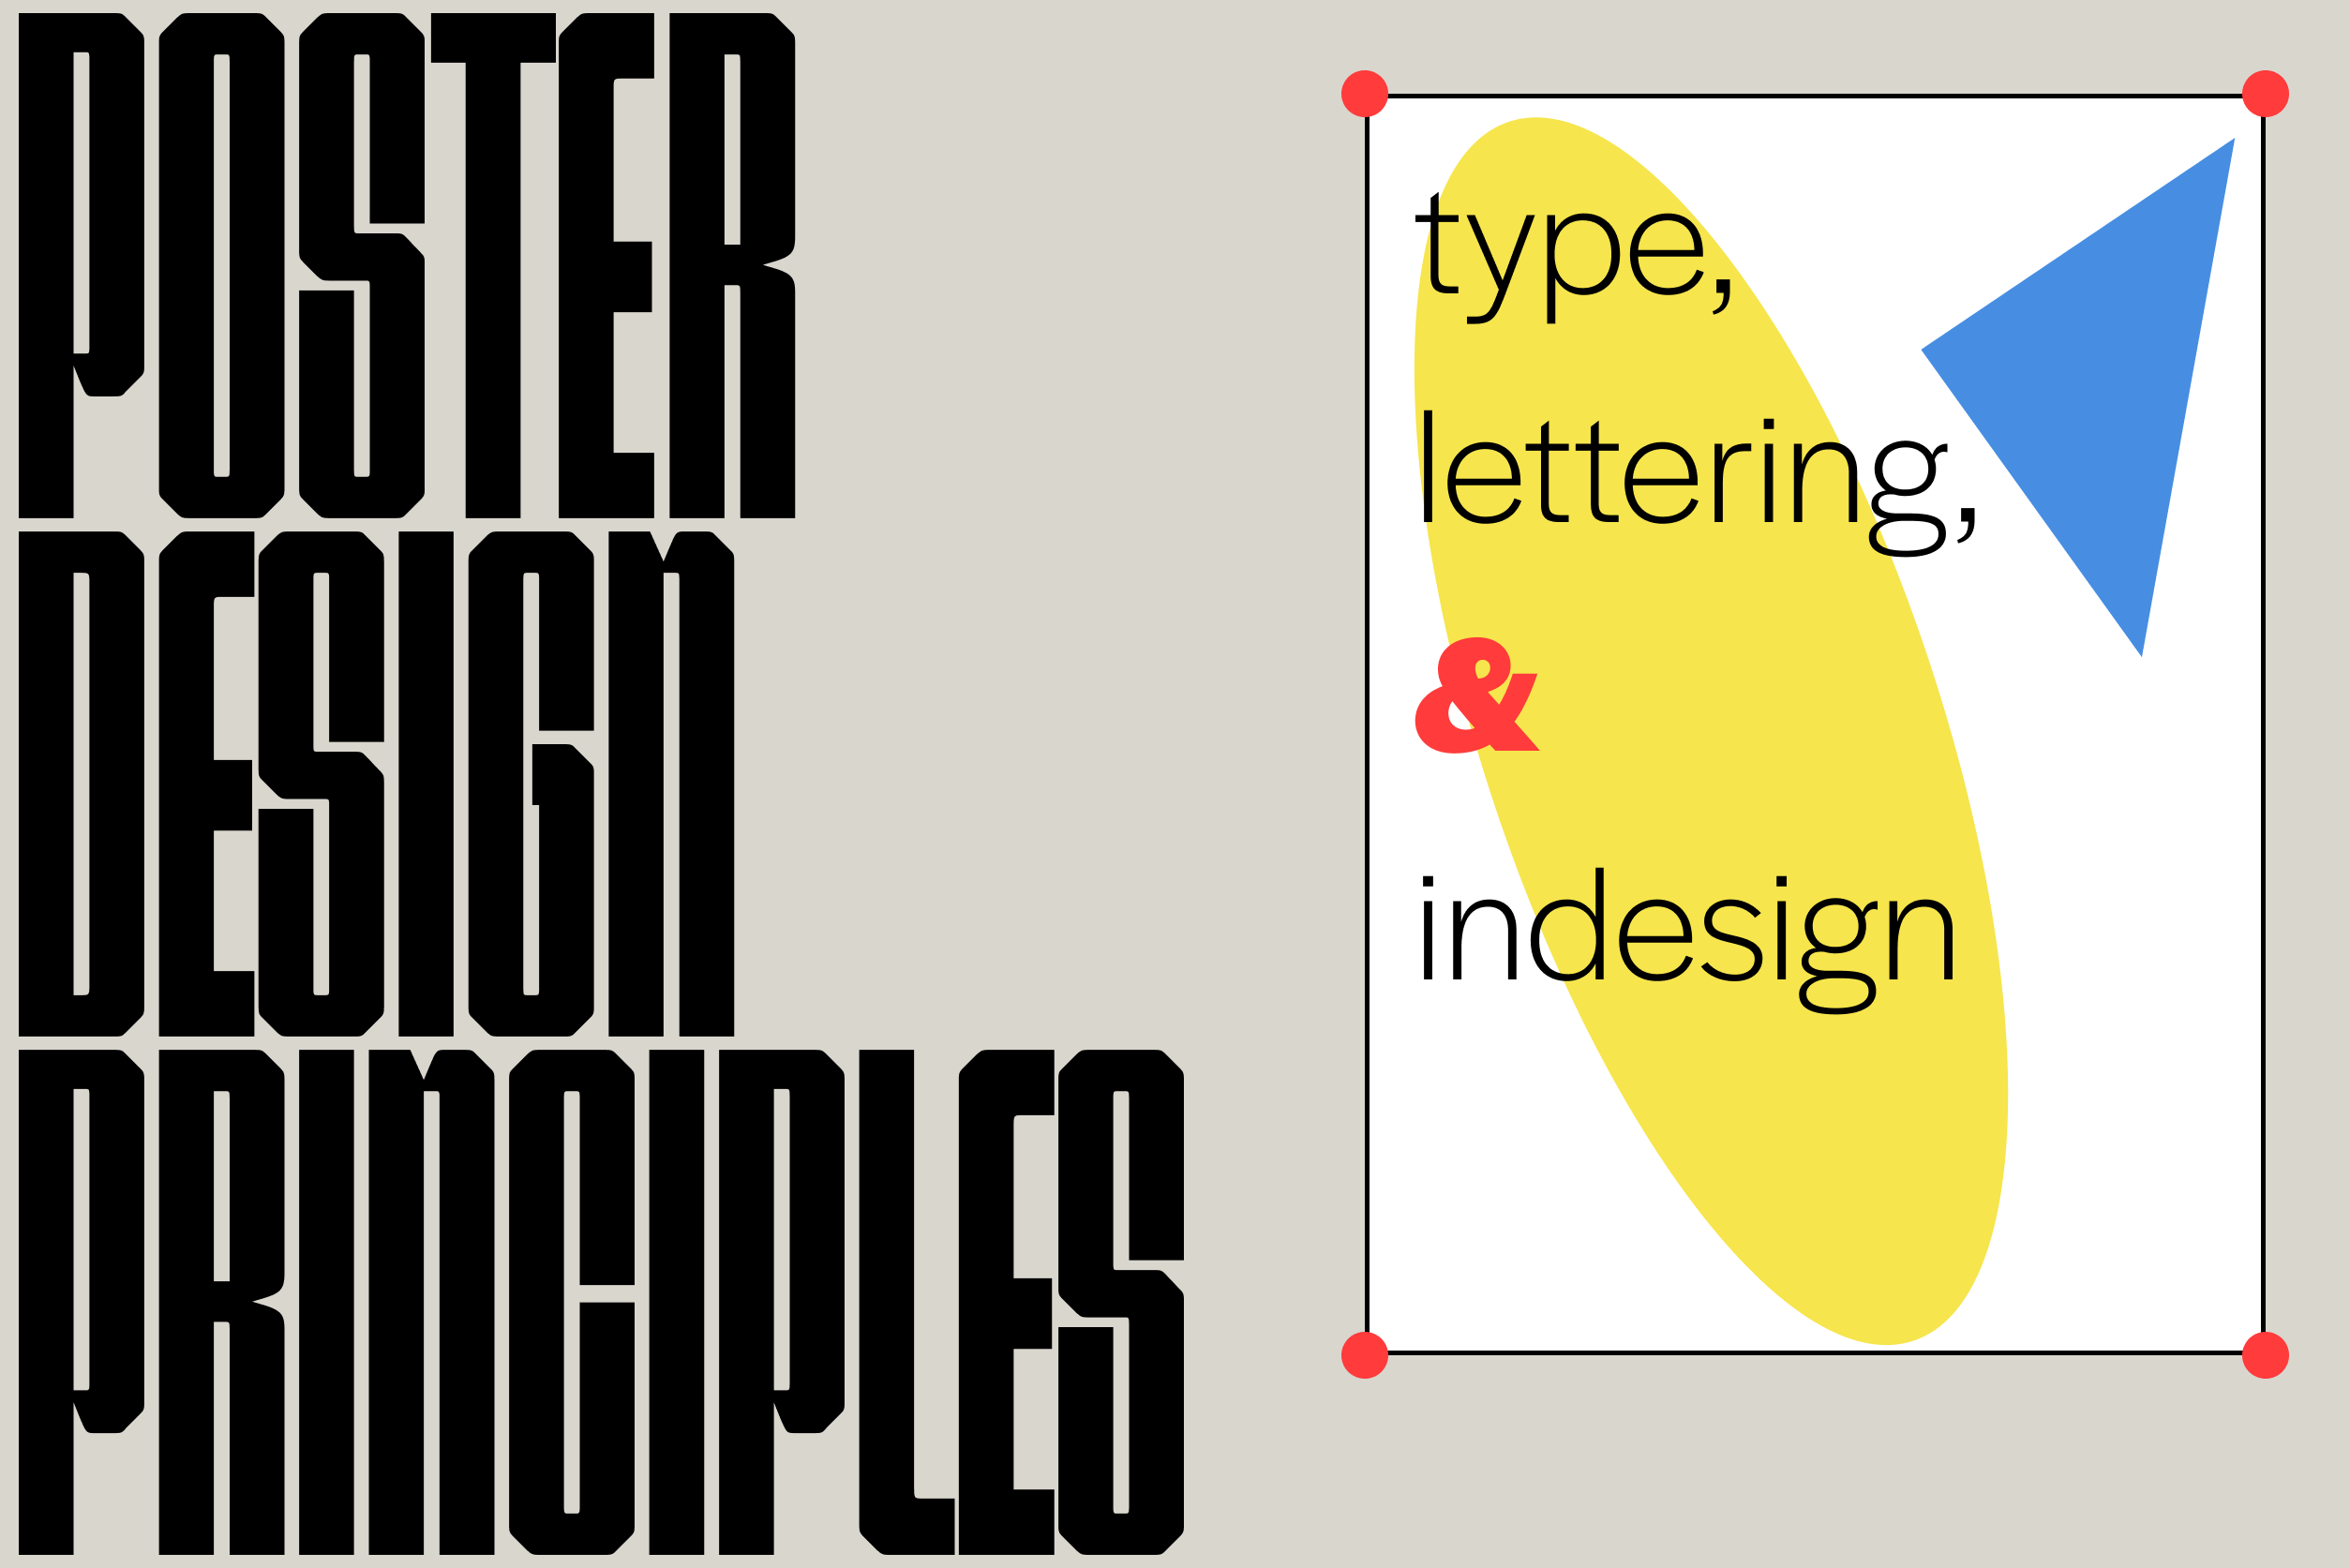 Poster Design Principles: Type, Lettering, and InDesign